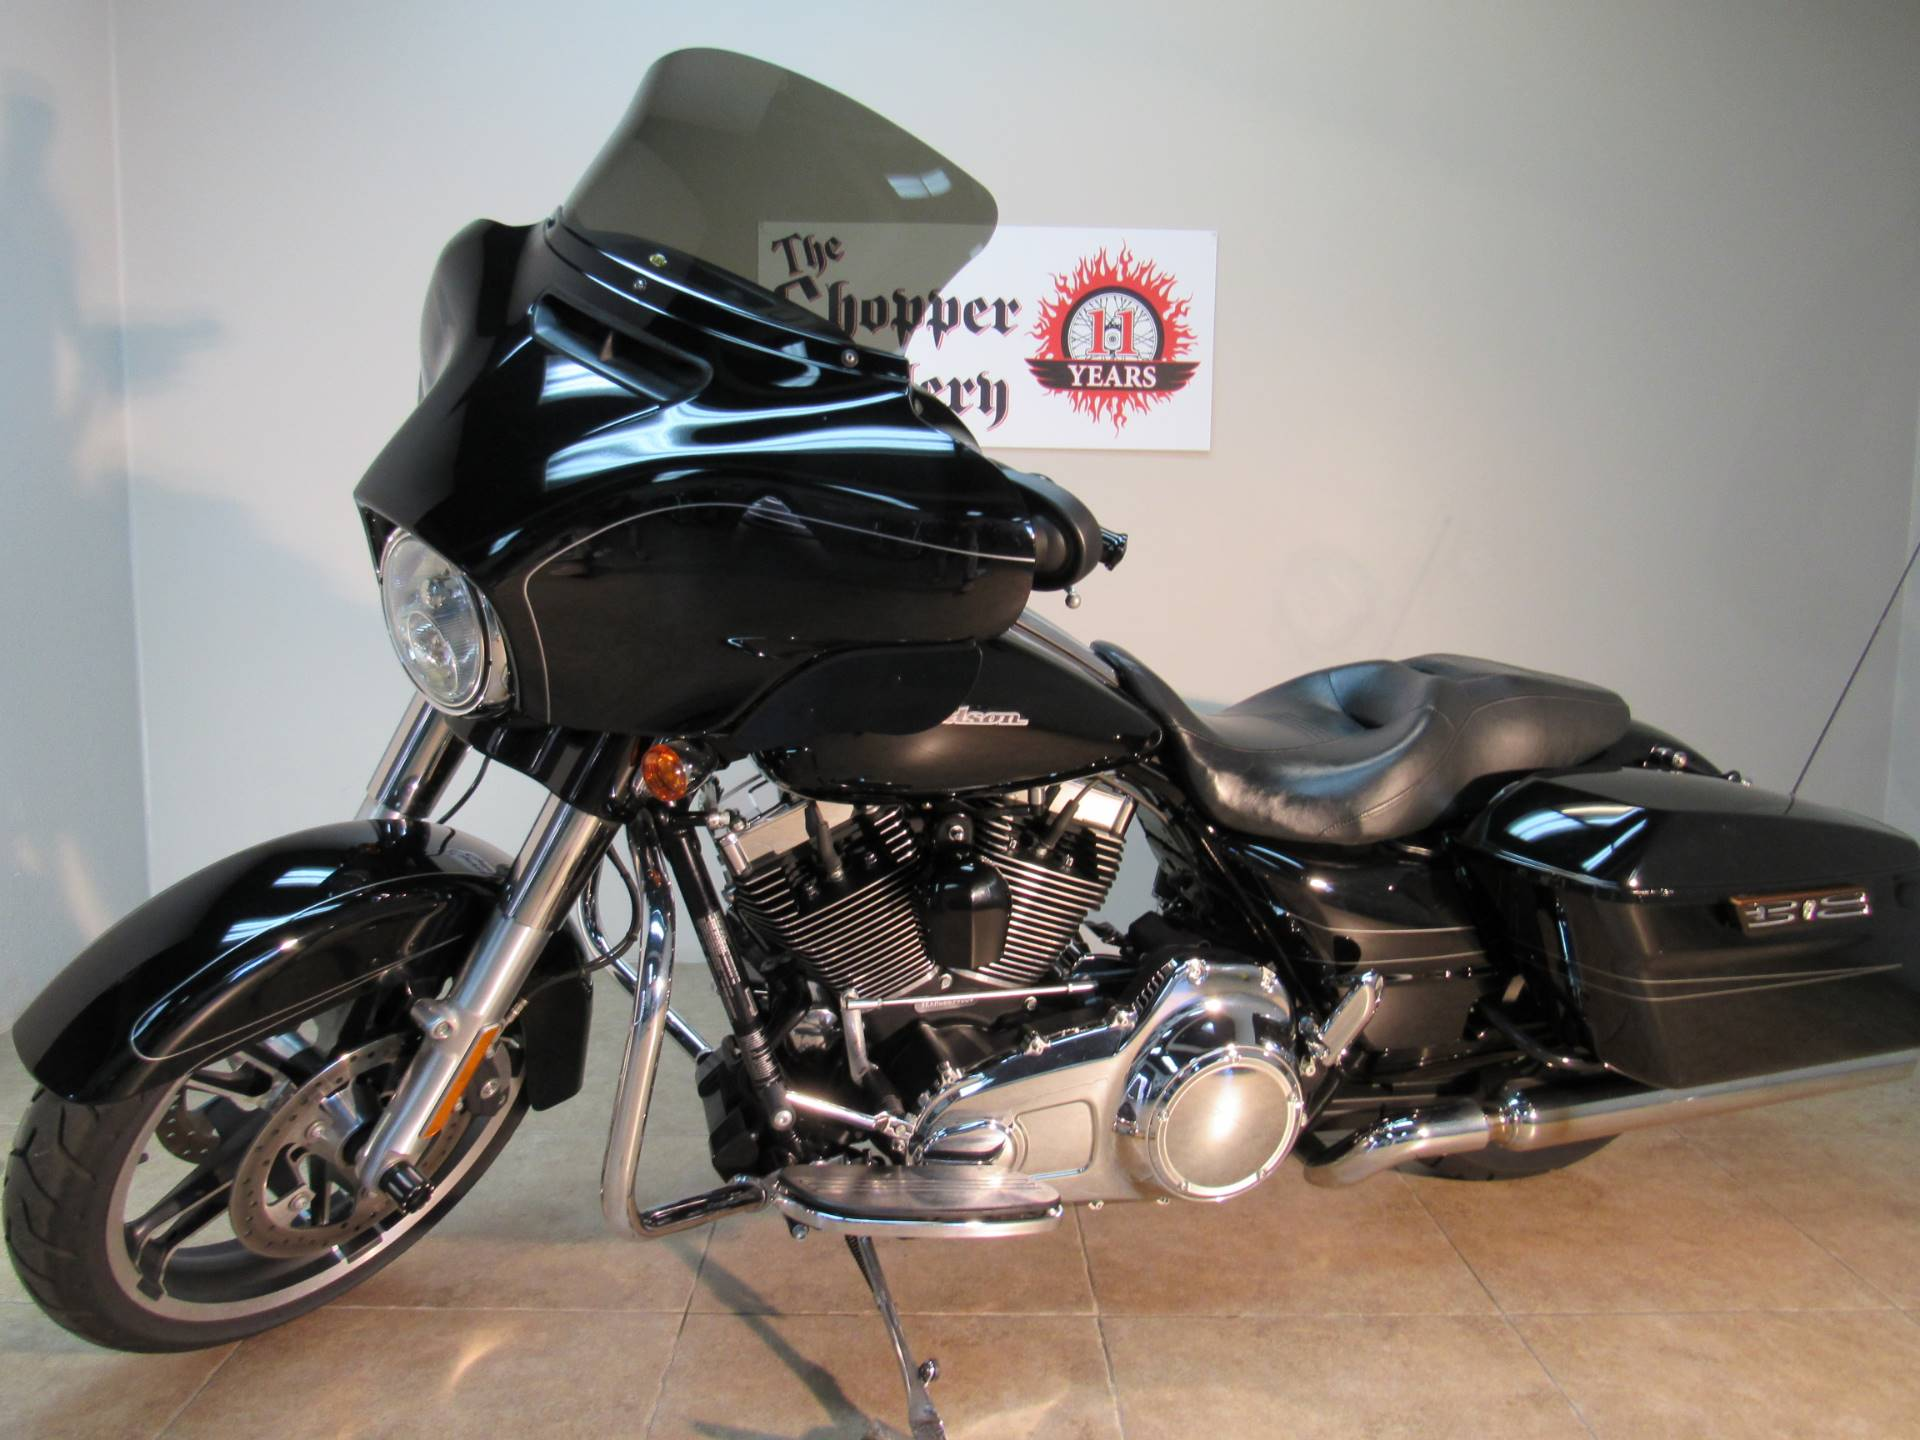 2016 Harley Davidson Street Glide Special In Temecula California